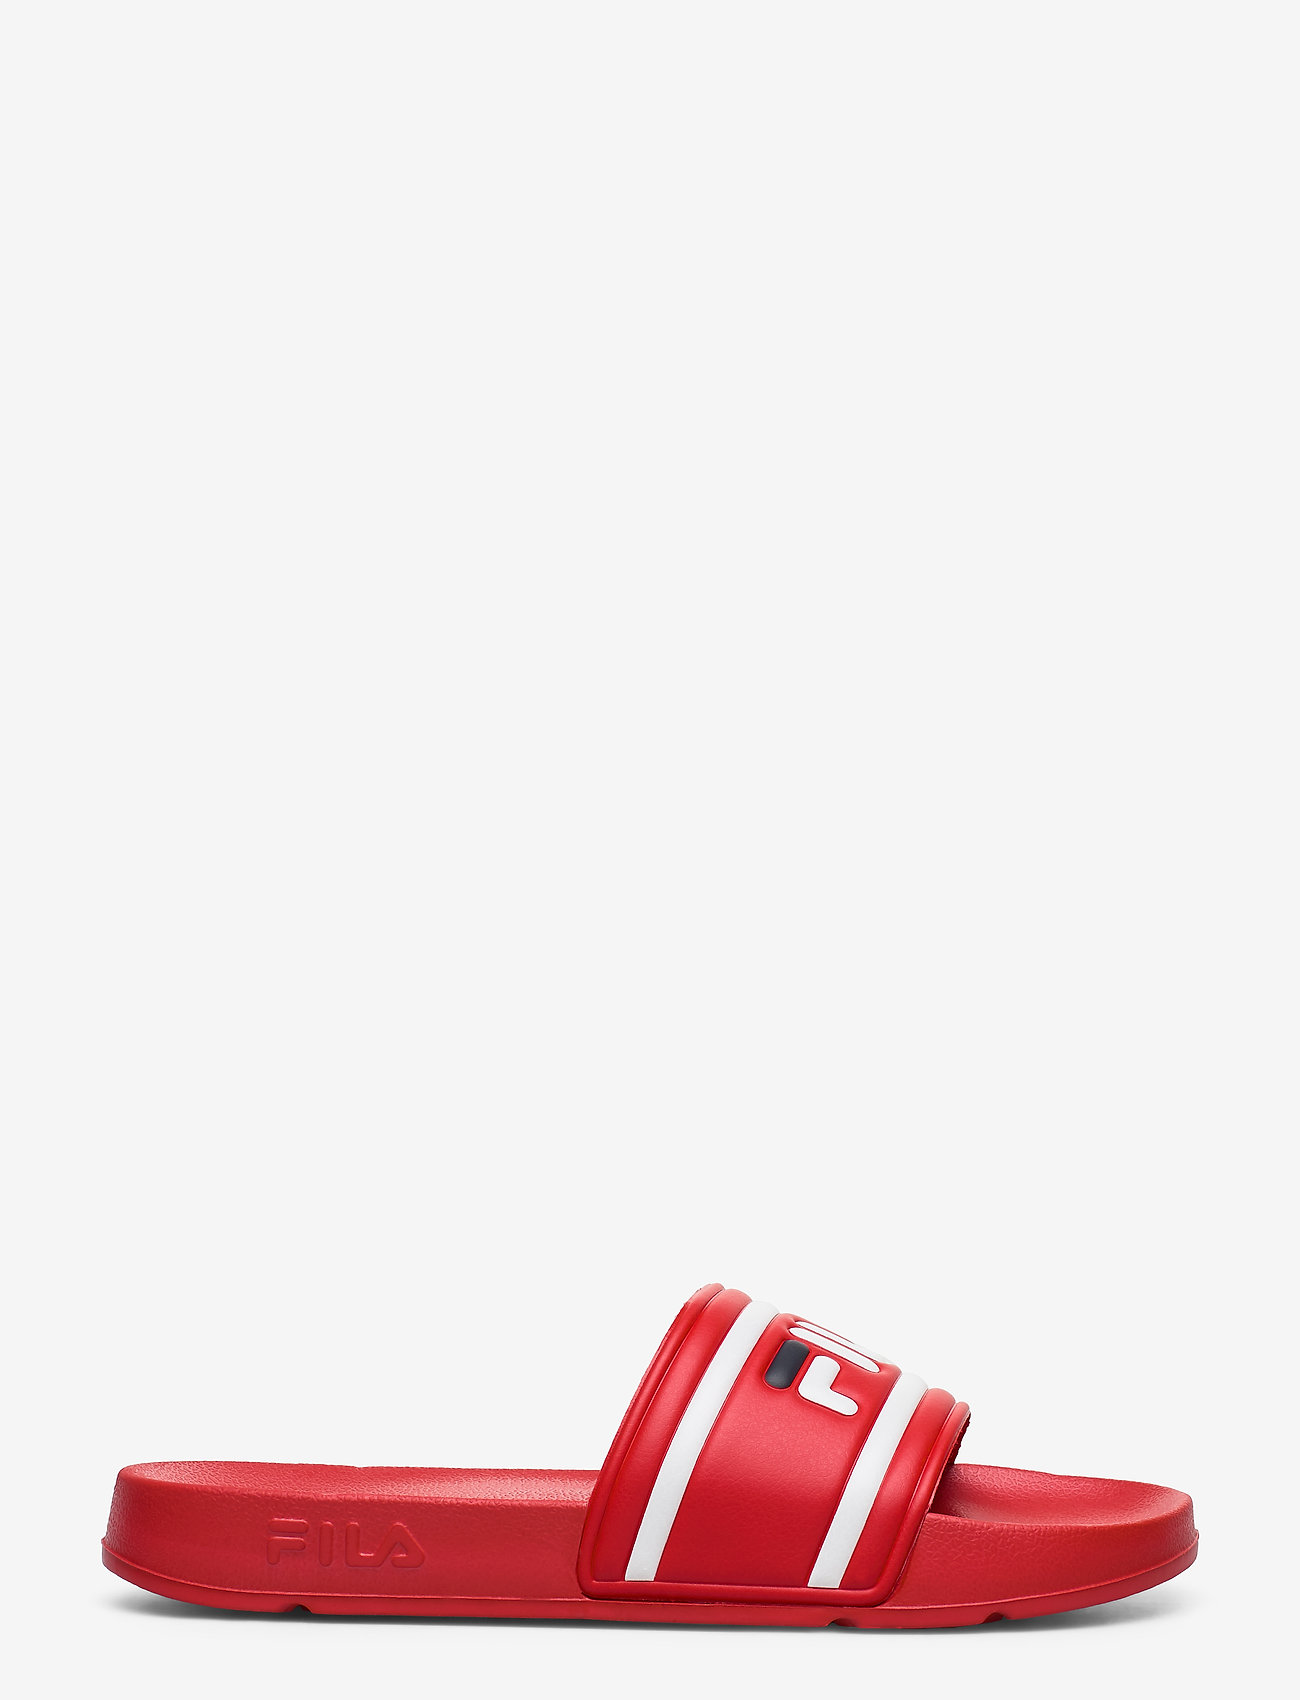 FILA - Morro Bay slipper 2.0 - pool sliders - fila red - 1